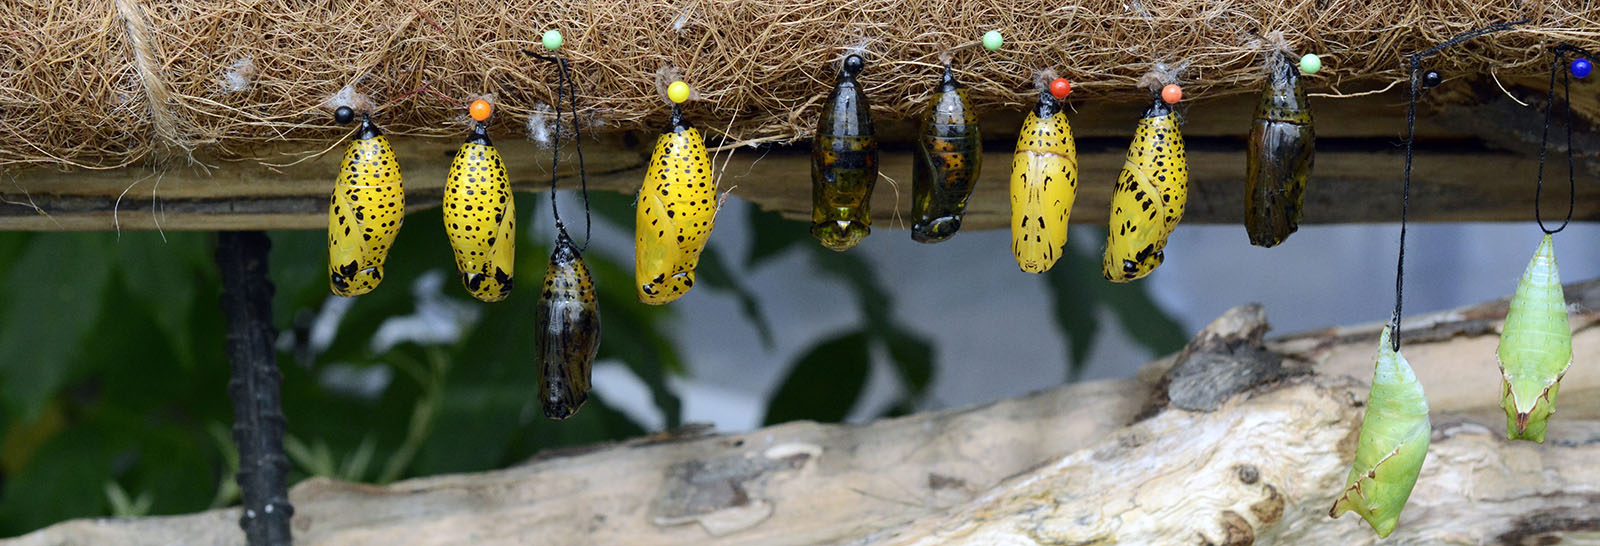 Beautiful yellow and black cocoons dangle from a tree, ready to give birth to recently metamorphosised butterflies.